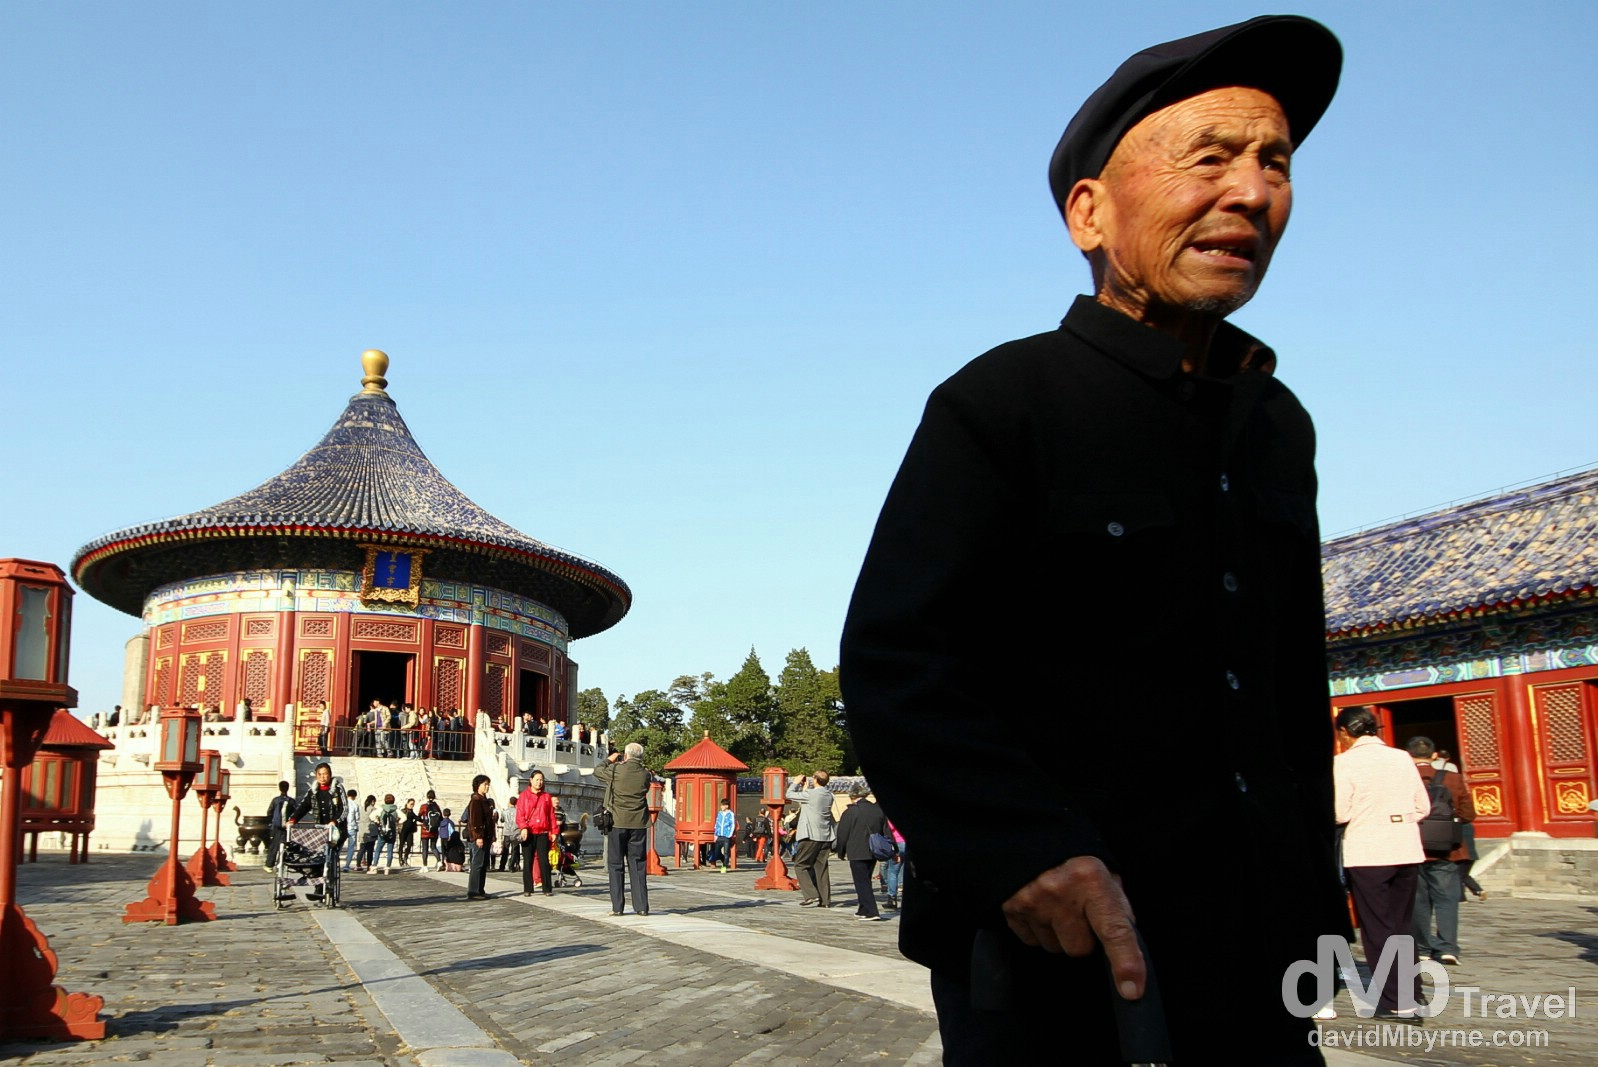 A man in the compound of the Imperial Vault of Heaven in the grounds of the Temple of Heaven complex, Beijing, China. October 27th 2012.